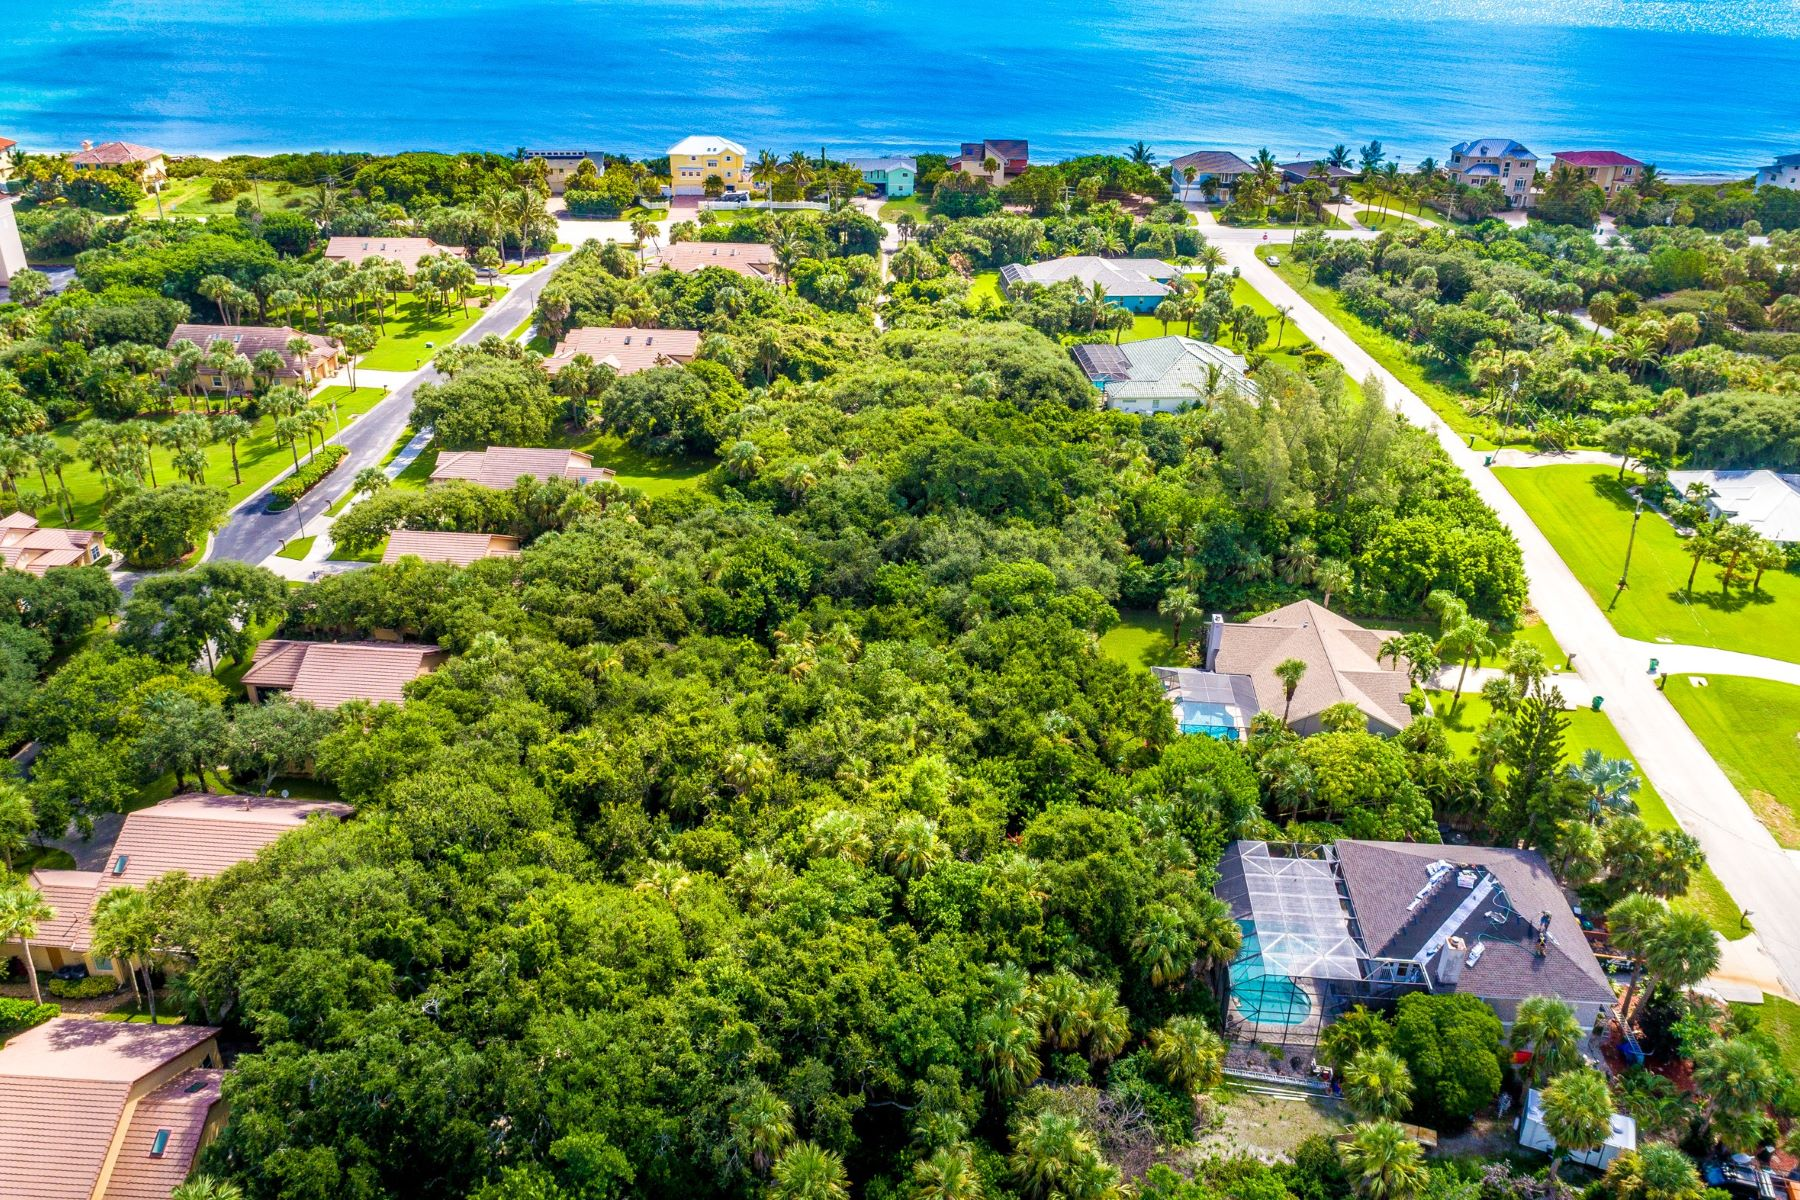 Property for Sale at 121 River Path Lane, Melbourne Beach, FL 121 River Path Lane Melbourne Beach, Florida 32951 United States